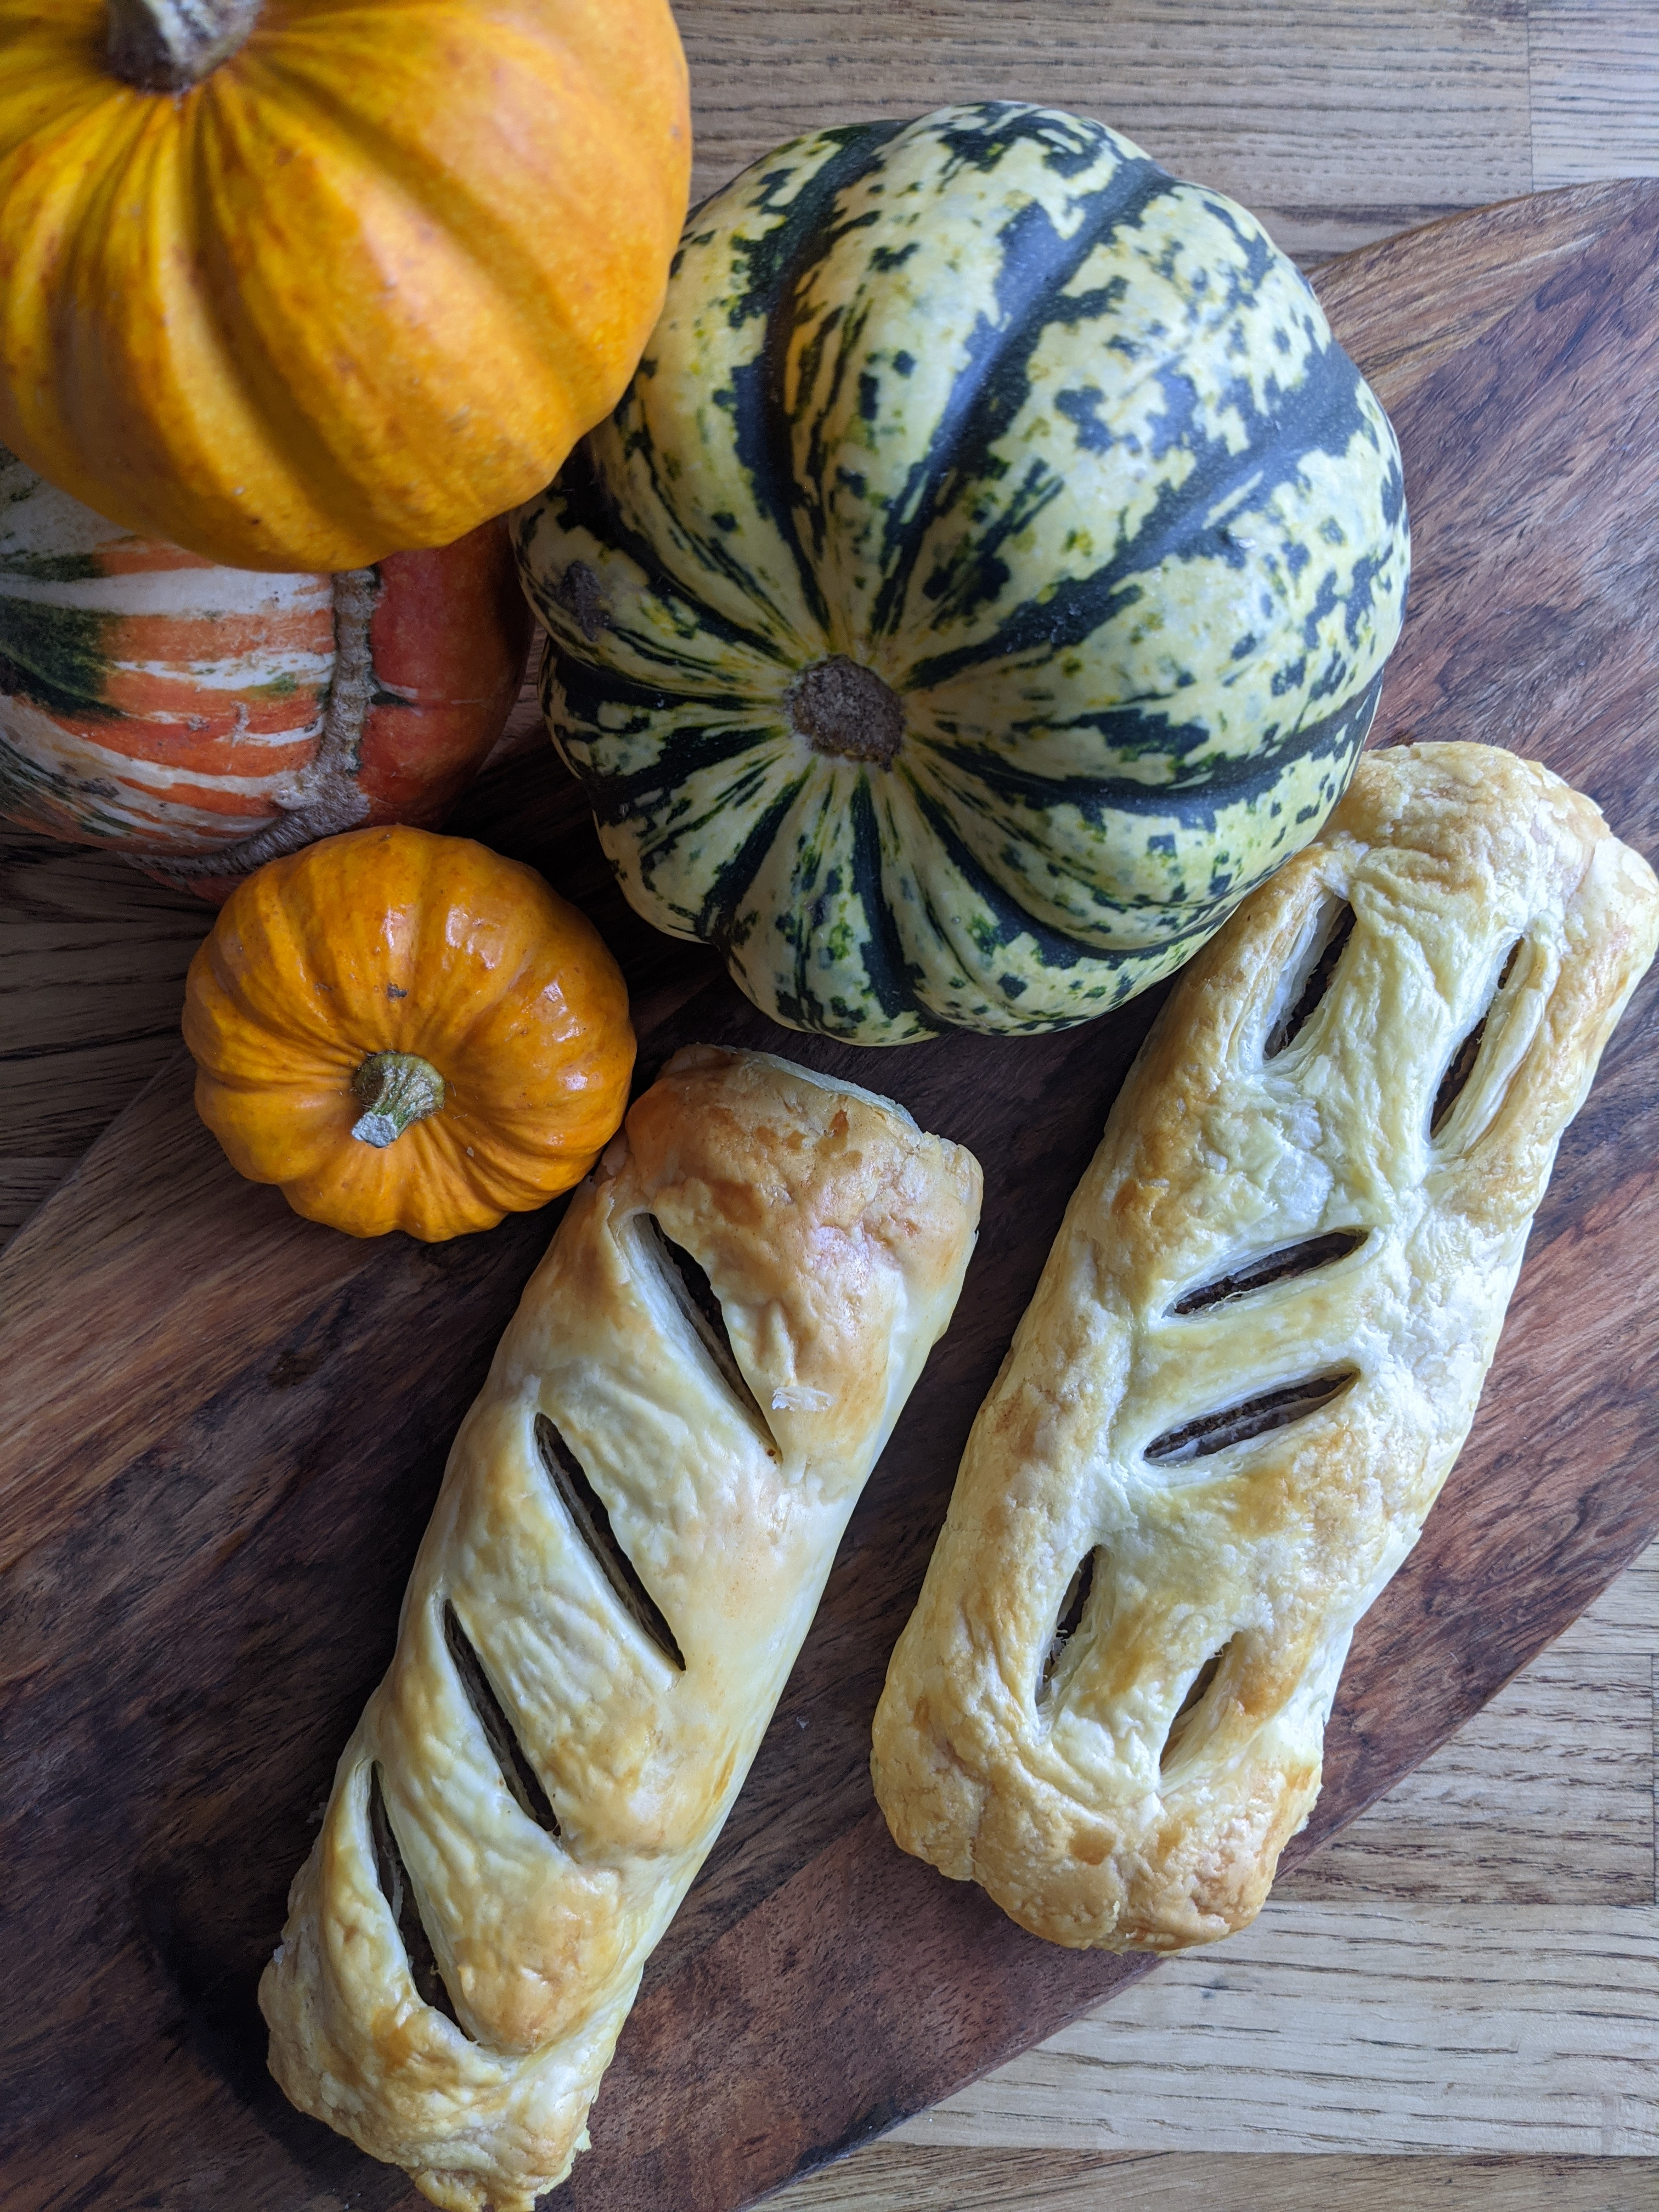 A vegan sausage roll and pumpkins at Tansy's Pantry on the Isle of Wight